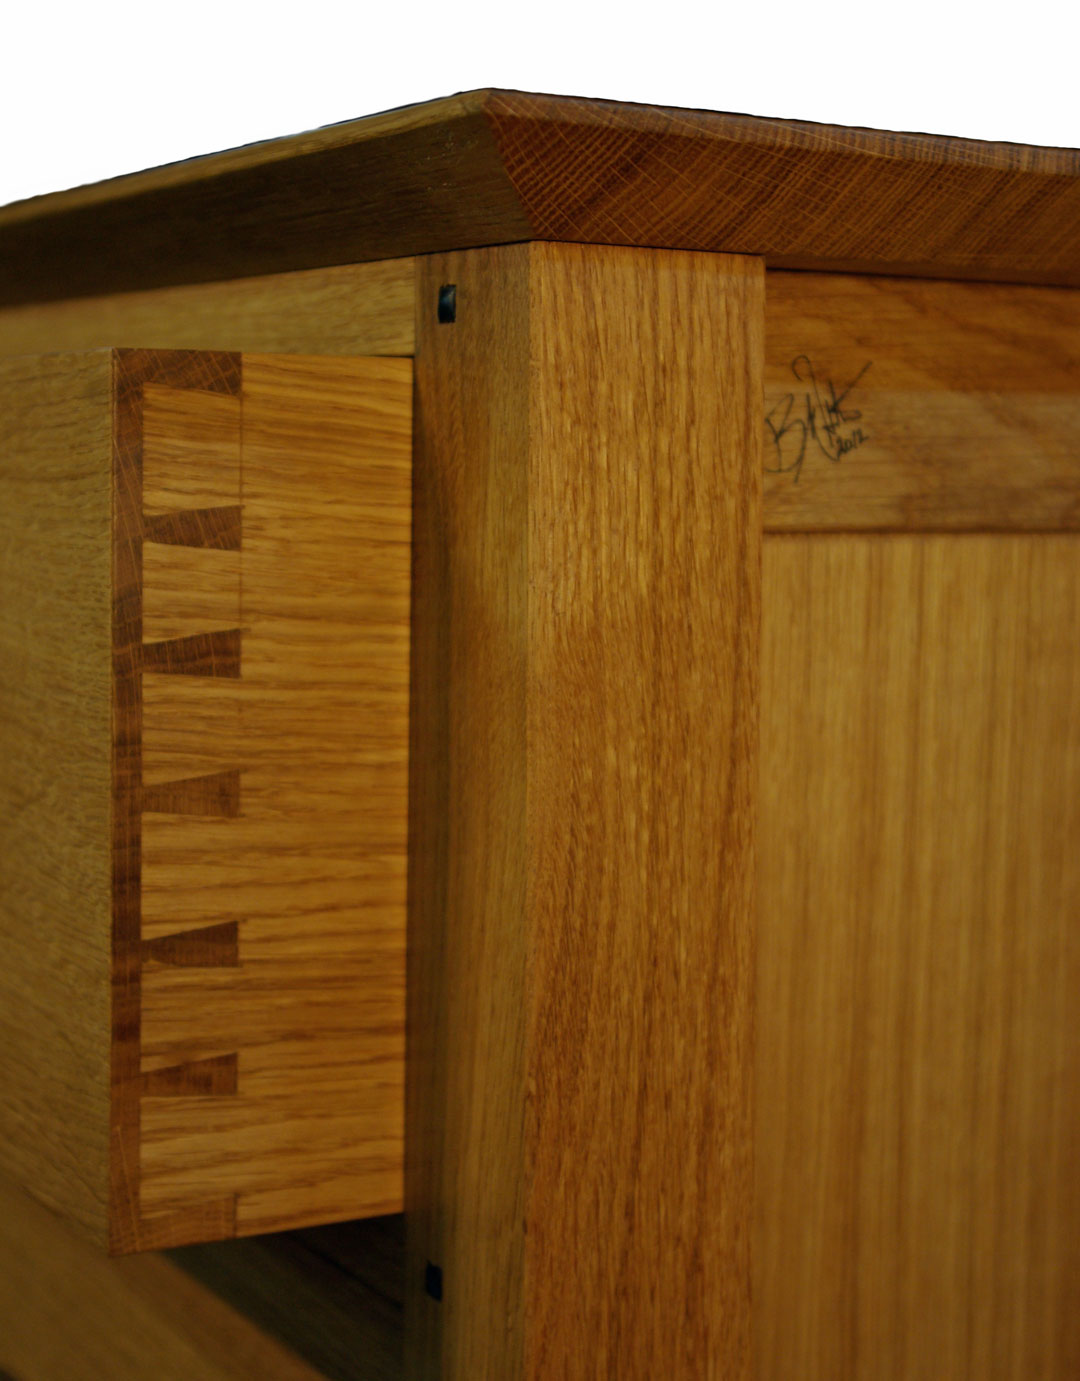 hand cut dovetails and pegged tenons